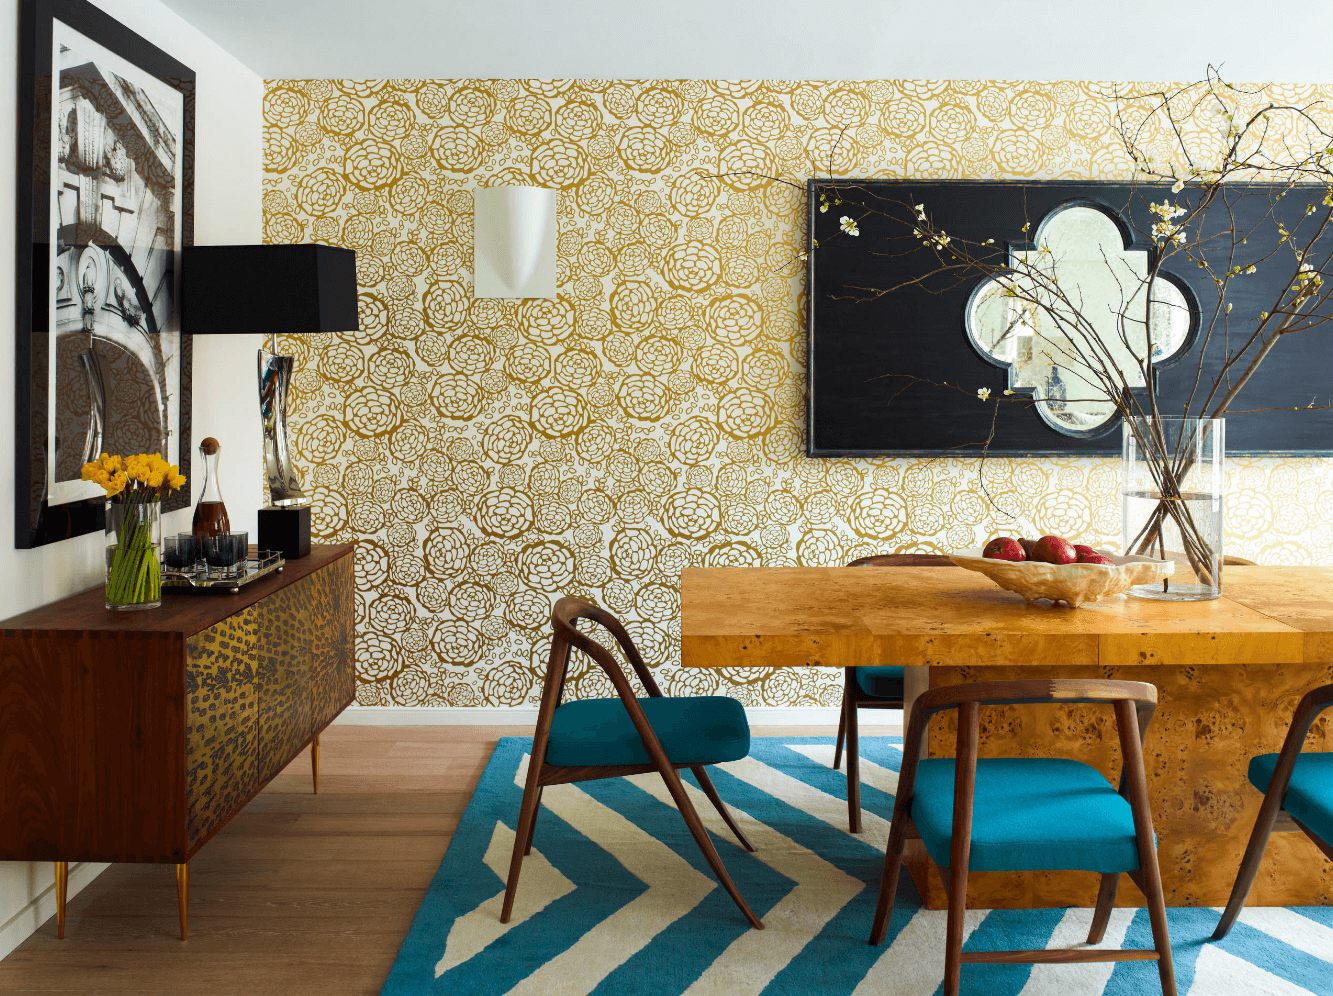 28 Stunning Wallpaper Ideas Your Home Needs Freshomecom - Home-design-wallpaper